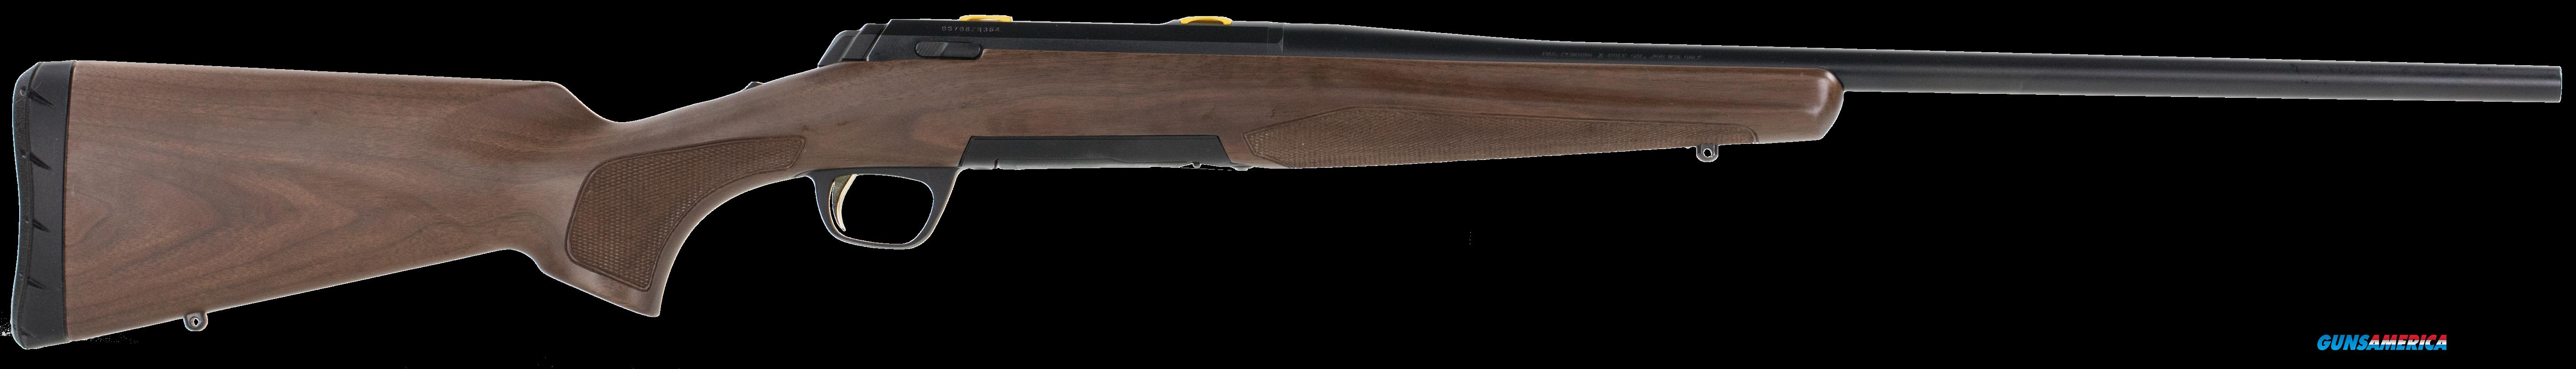 "Browning 035255218 X-Bolt Hunter LH 308 Win 22"" 4+1 Sat Walnut Stock Blued  Guns > Rifles > Browning Rifles > Bolt Action > Hunting > Blue"